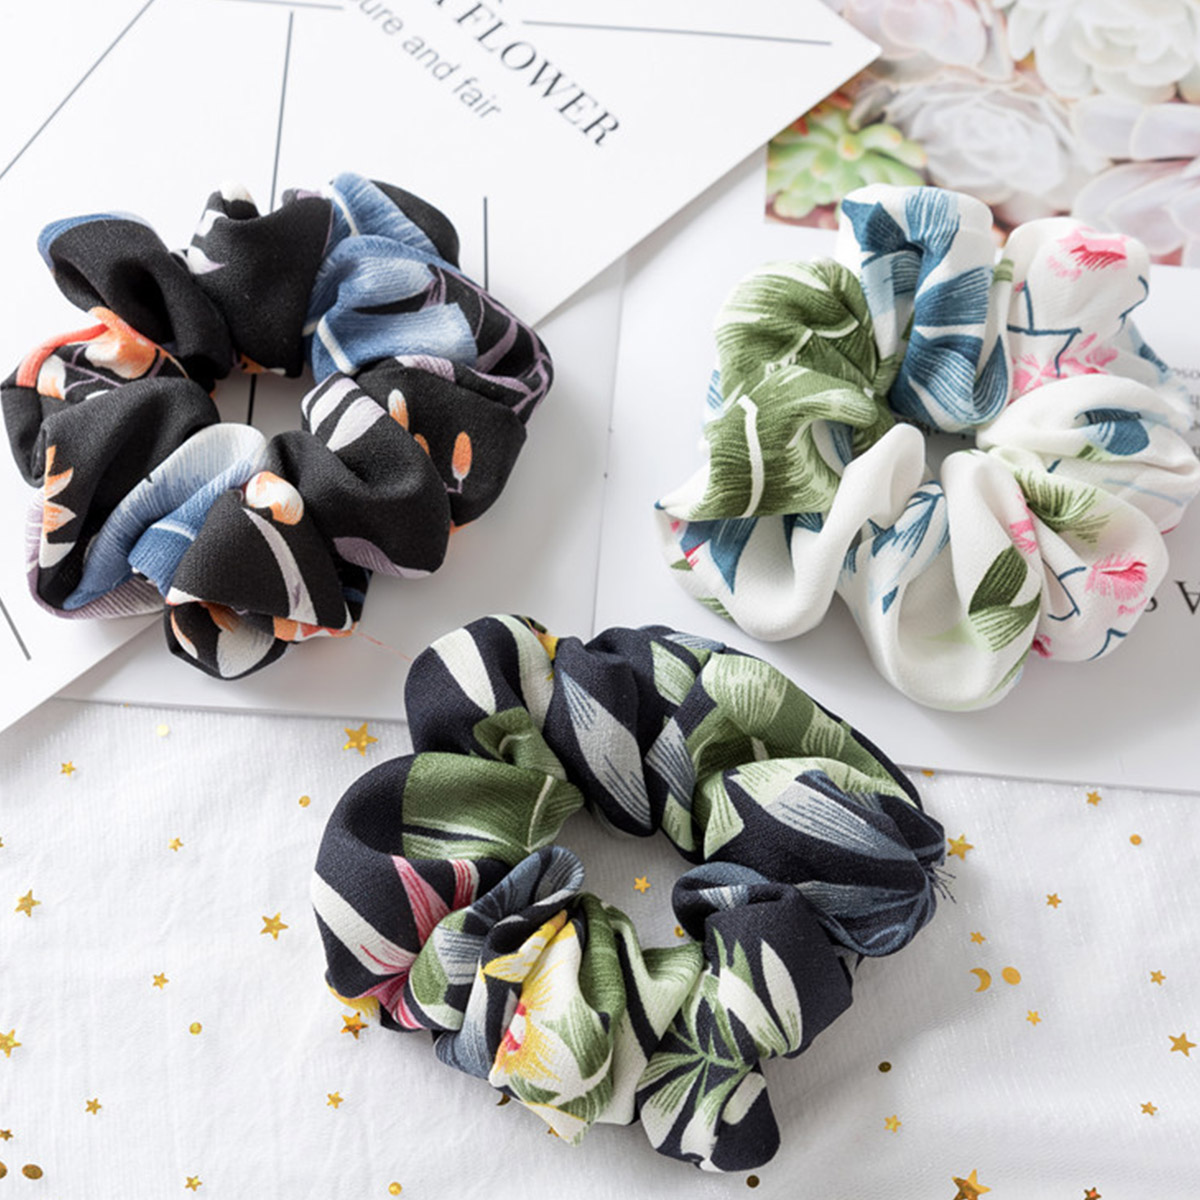 3Pcs/set Hair Accessories Floral Elastic Hair Tie Scrunchies For Girl Women Colth Ponytail Hairs Holder Rope Headwear